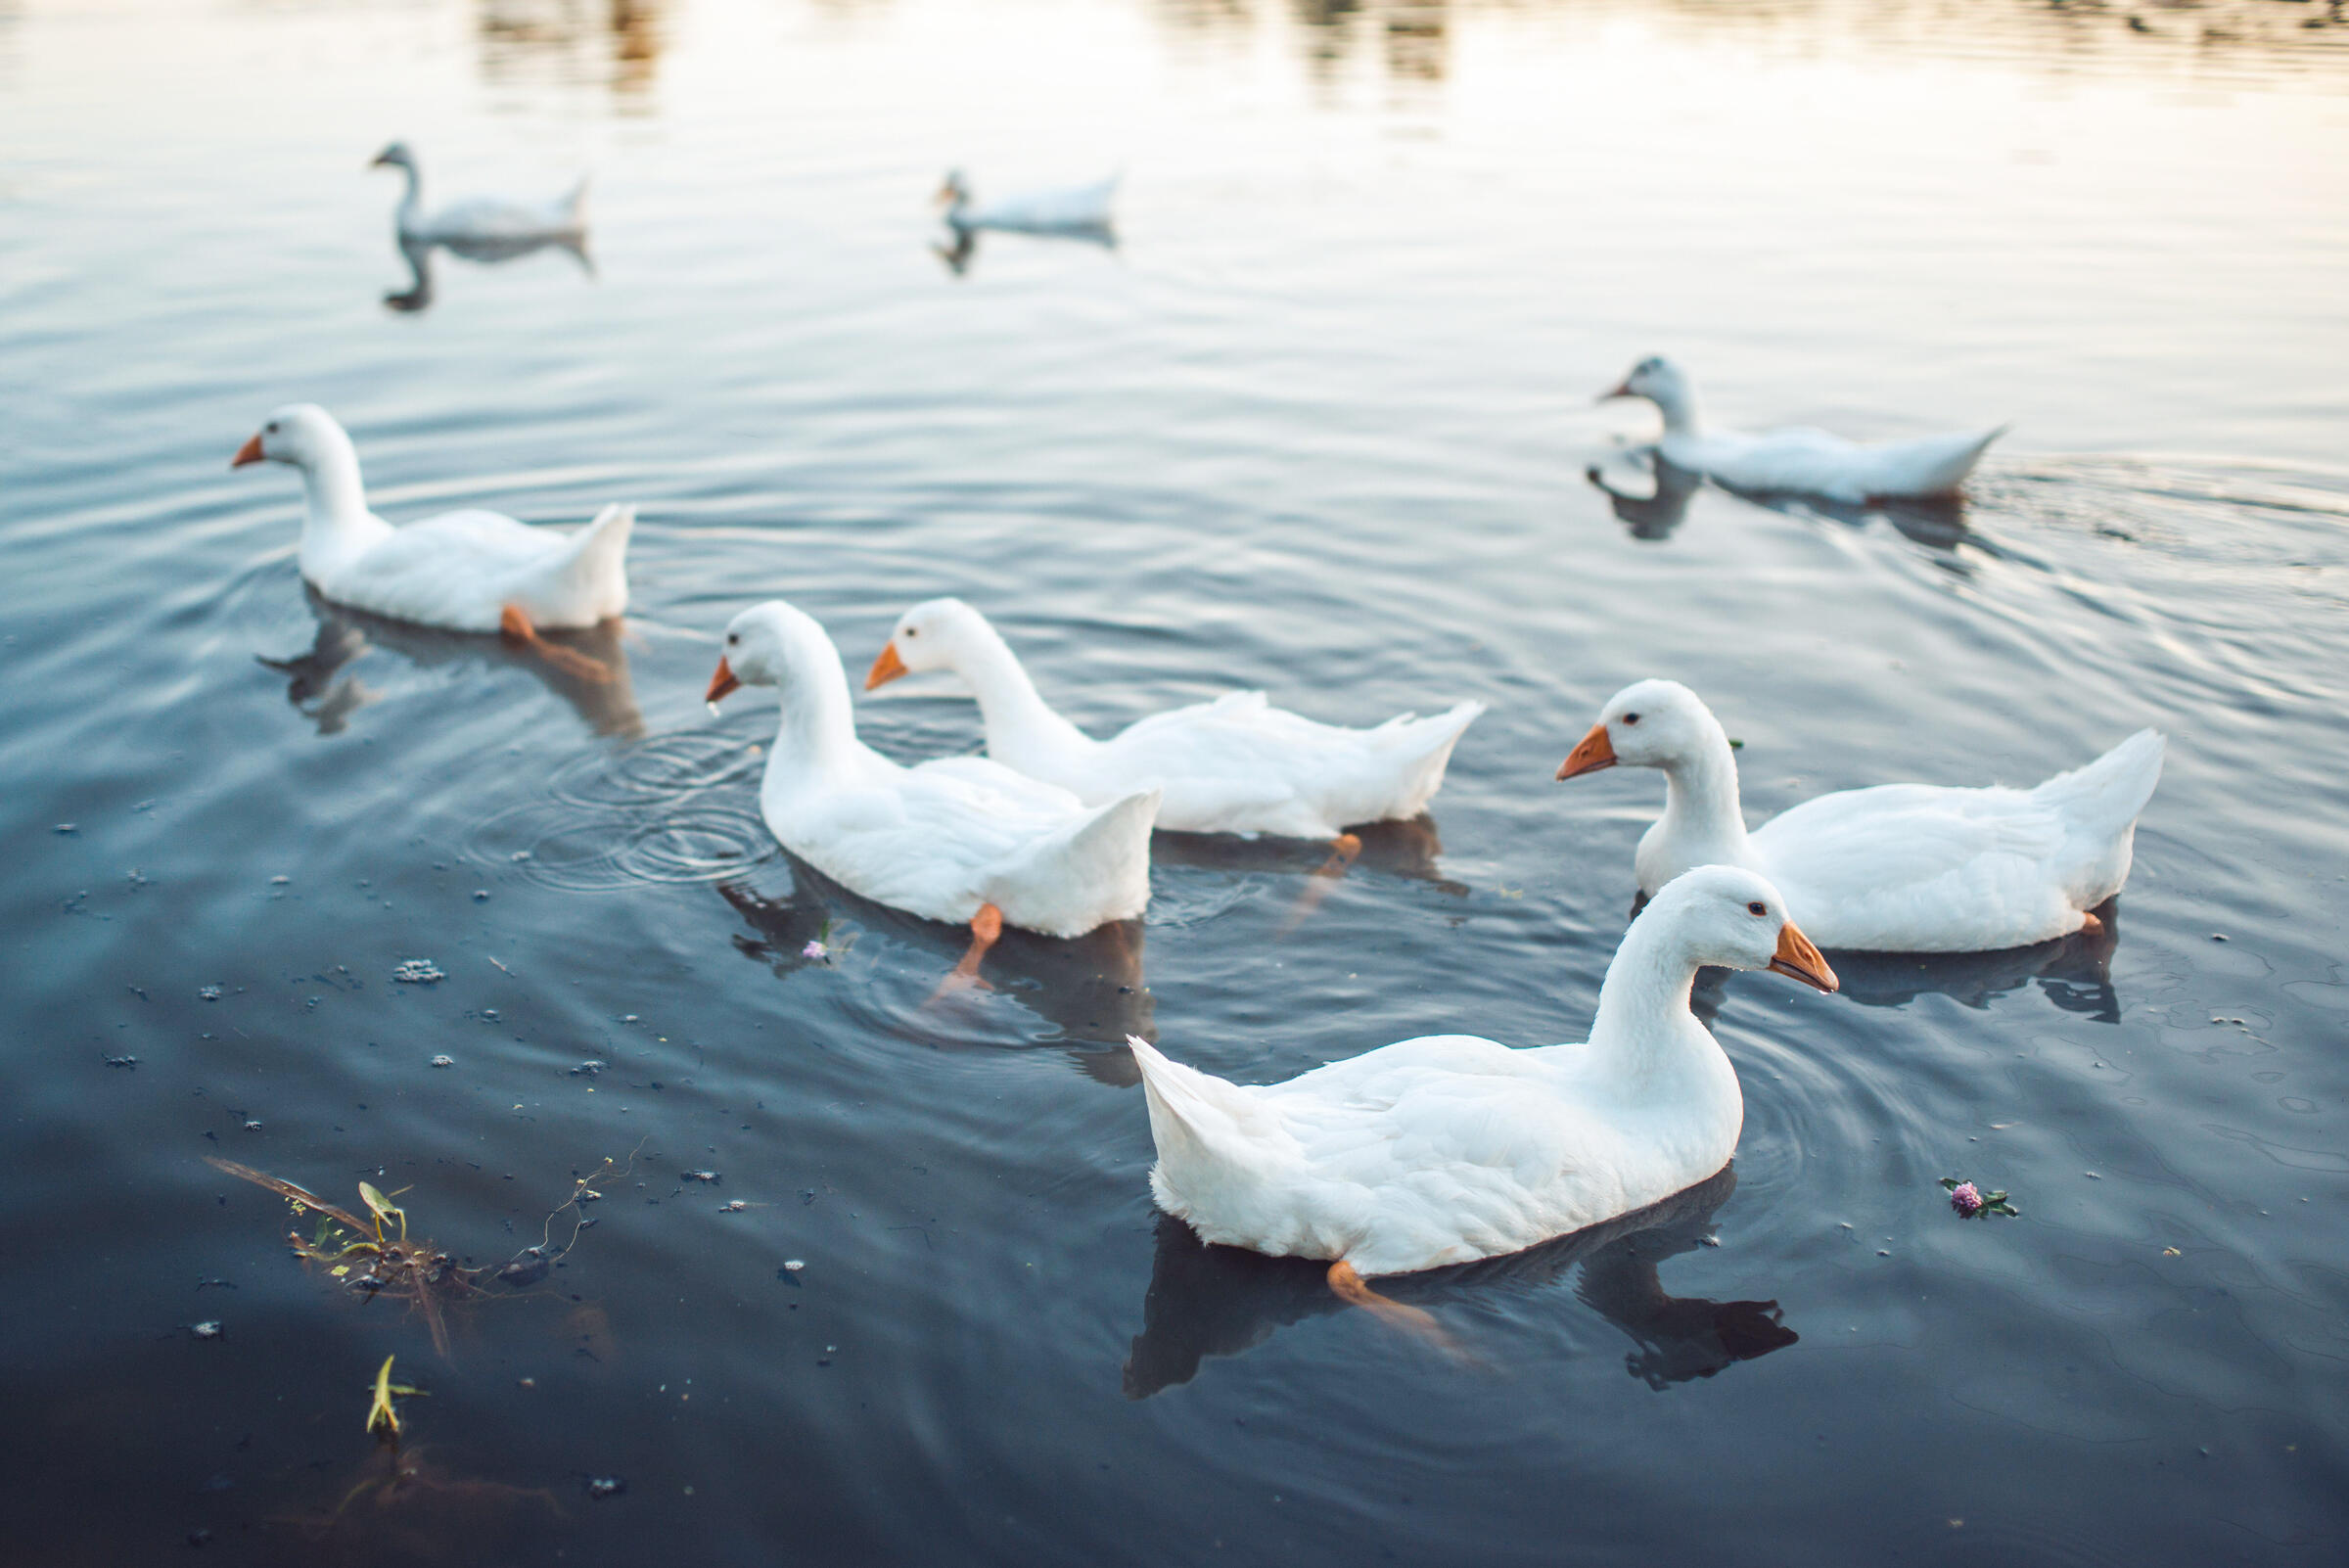 A flock of domestic geese. Zoonar GmbH/Alamy